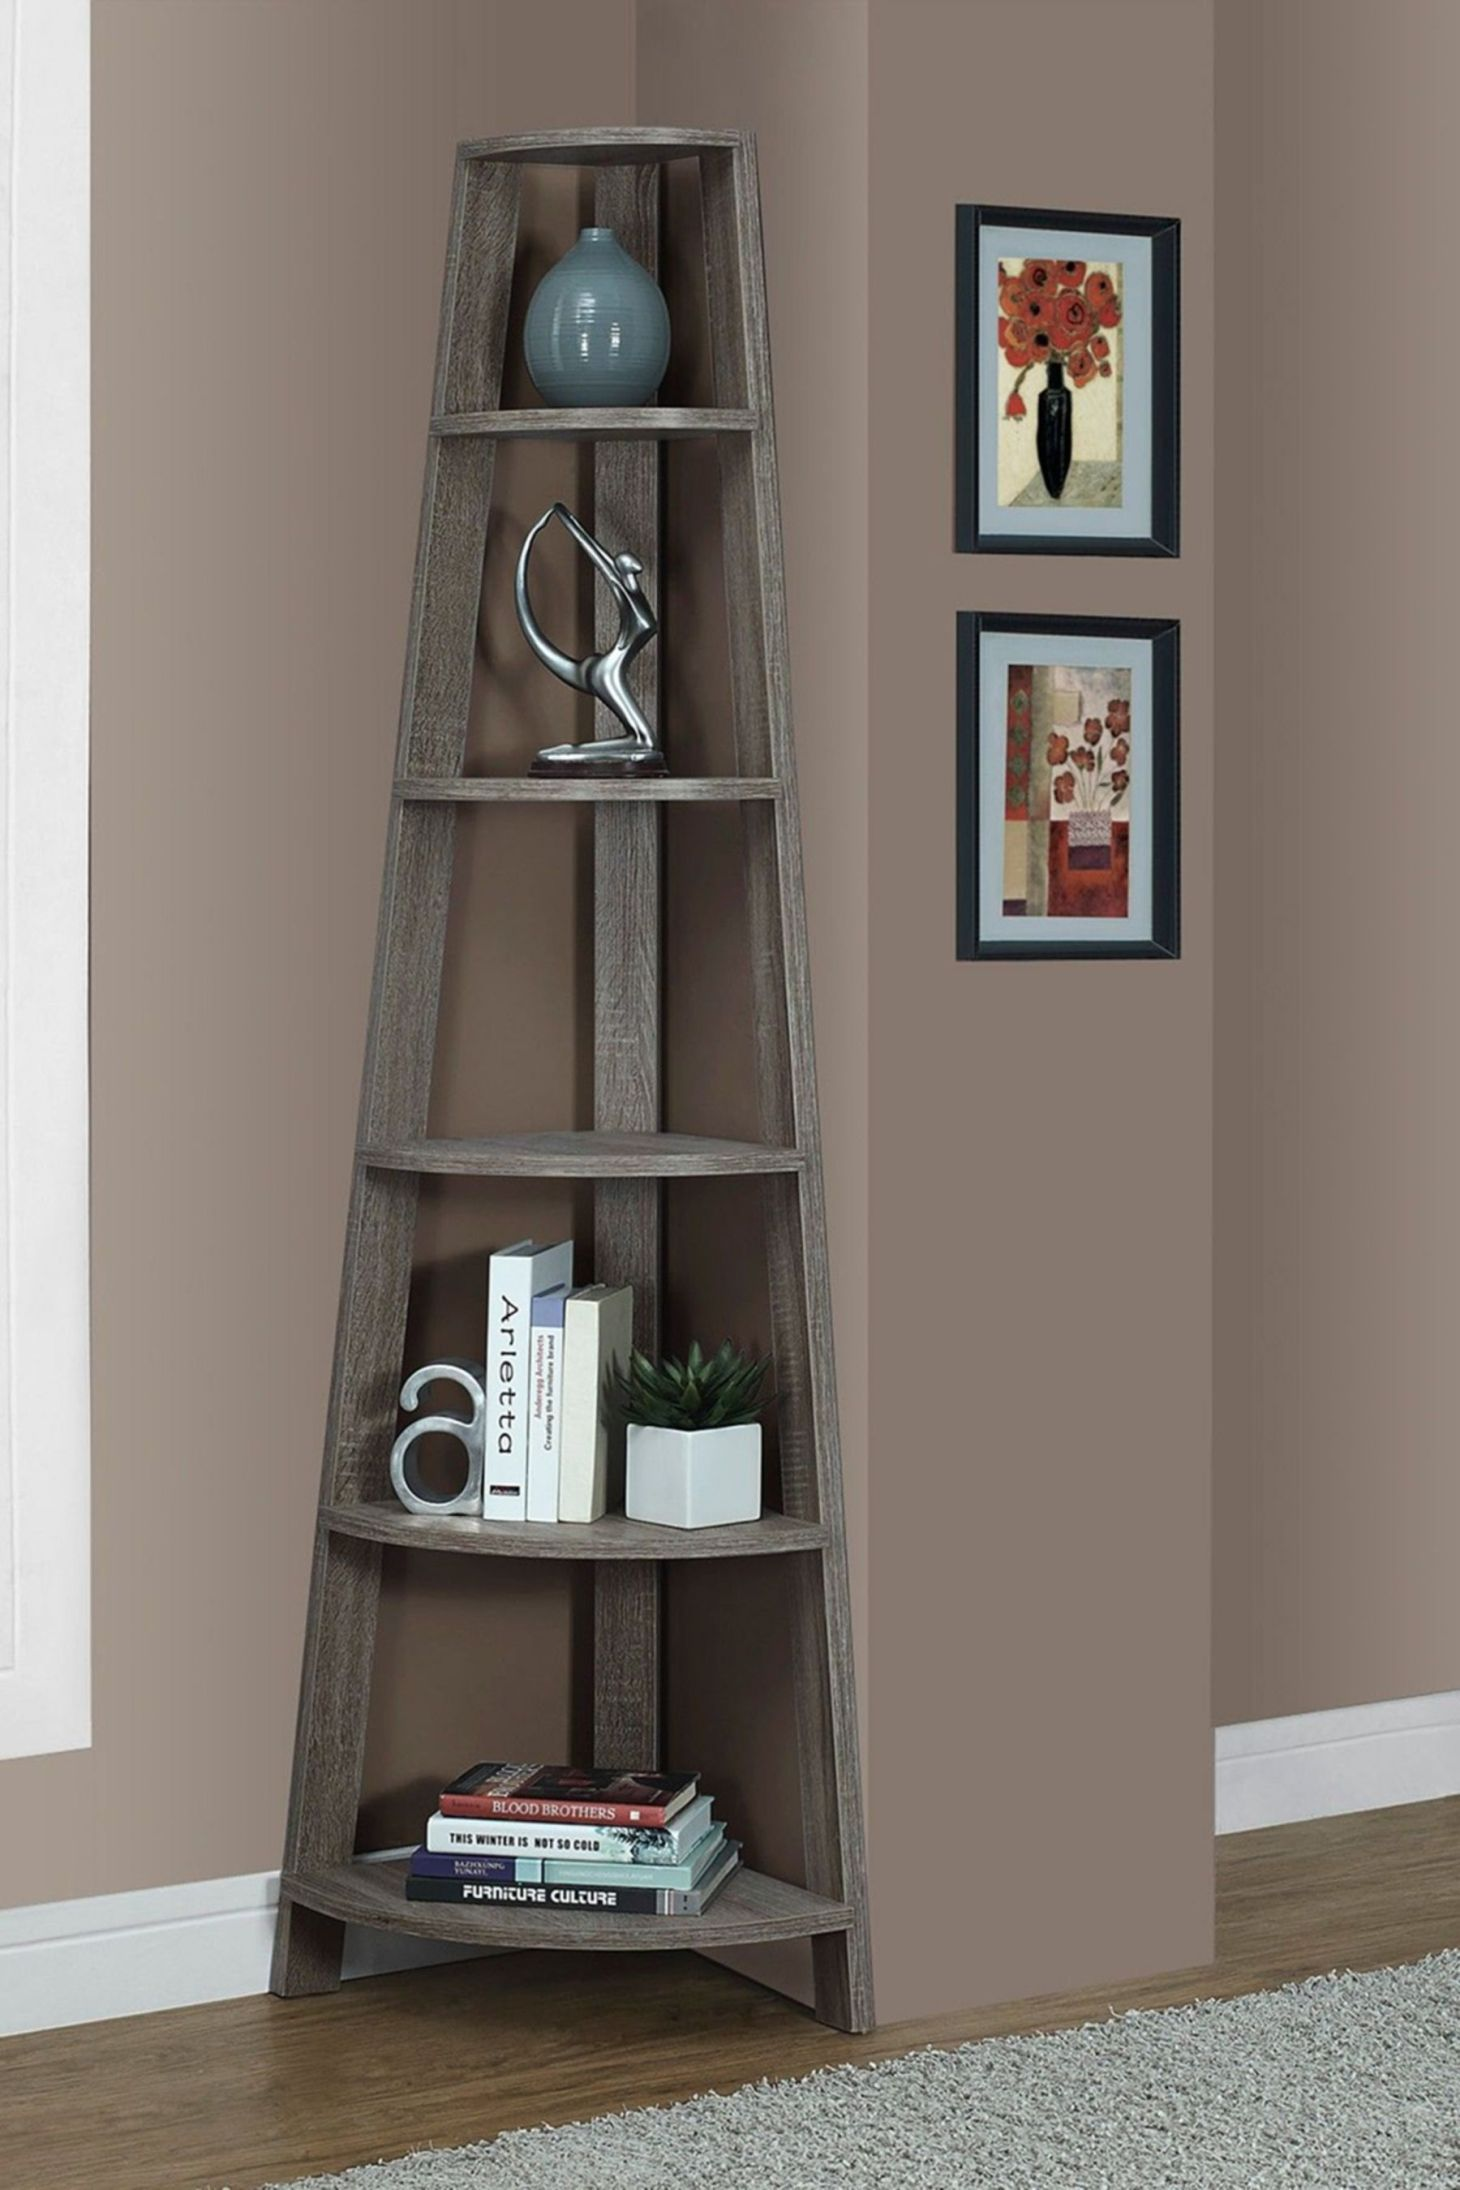 10 Interesting Corner Shelves Design Ideas To Save Some Space